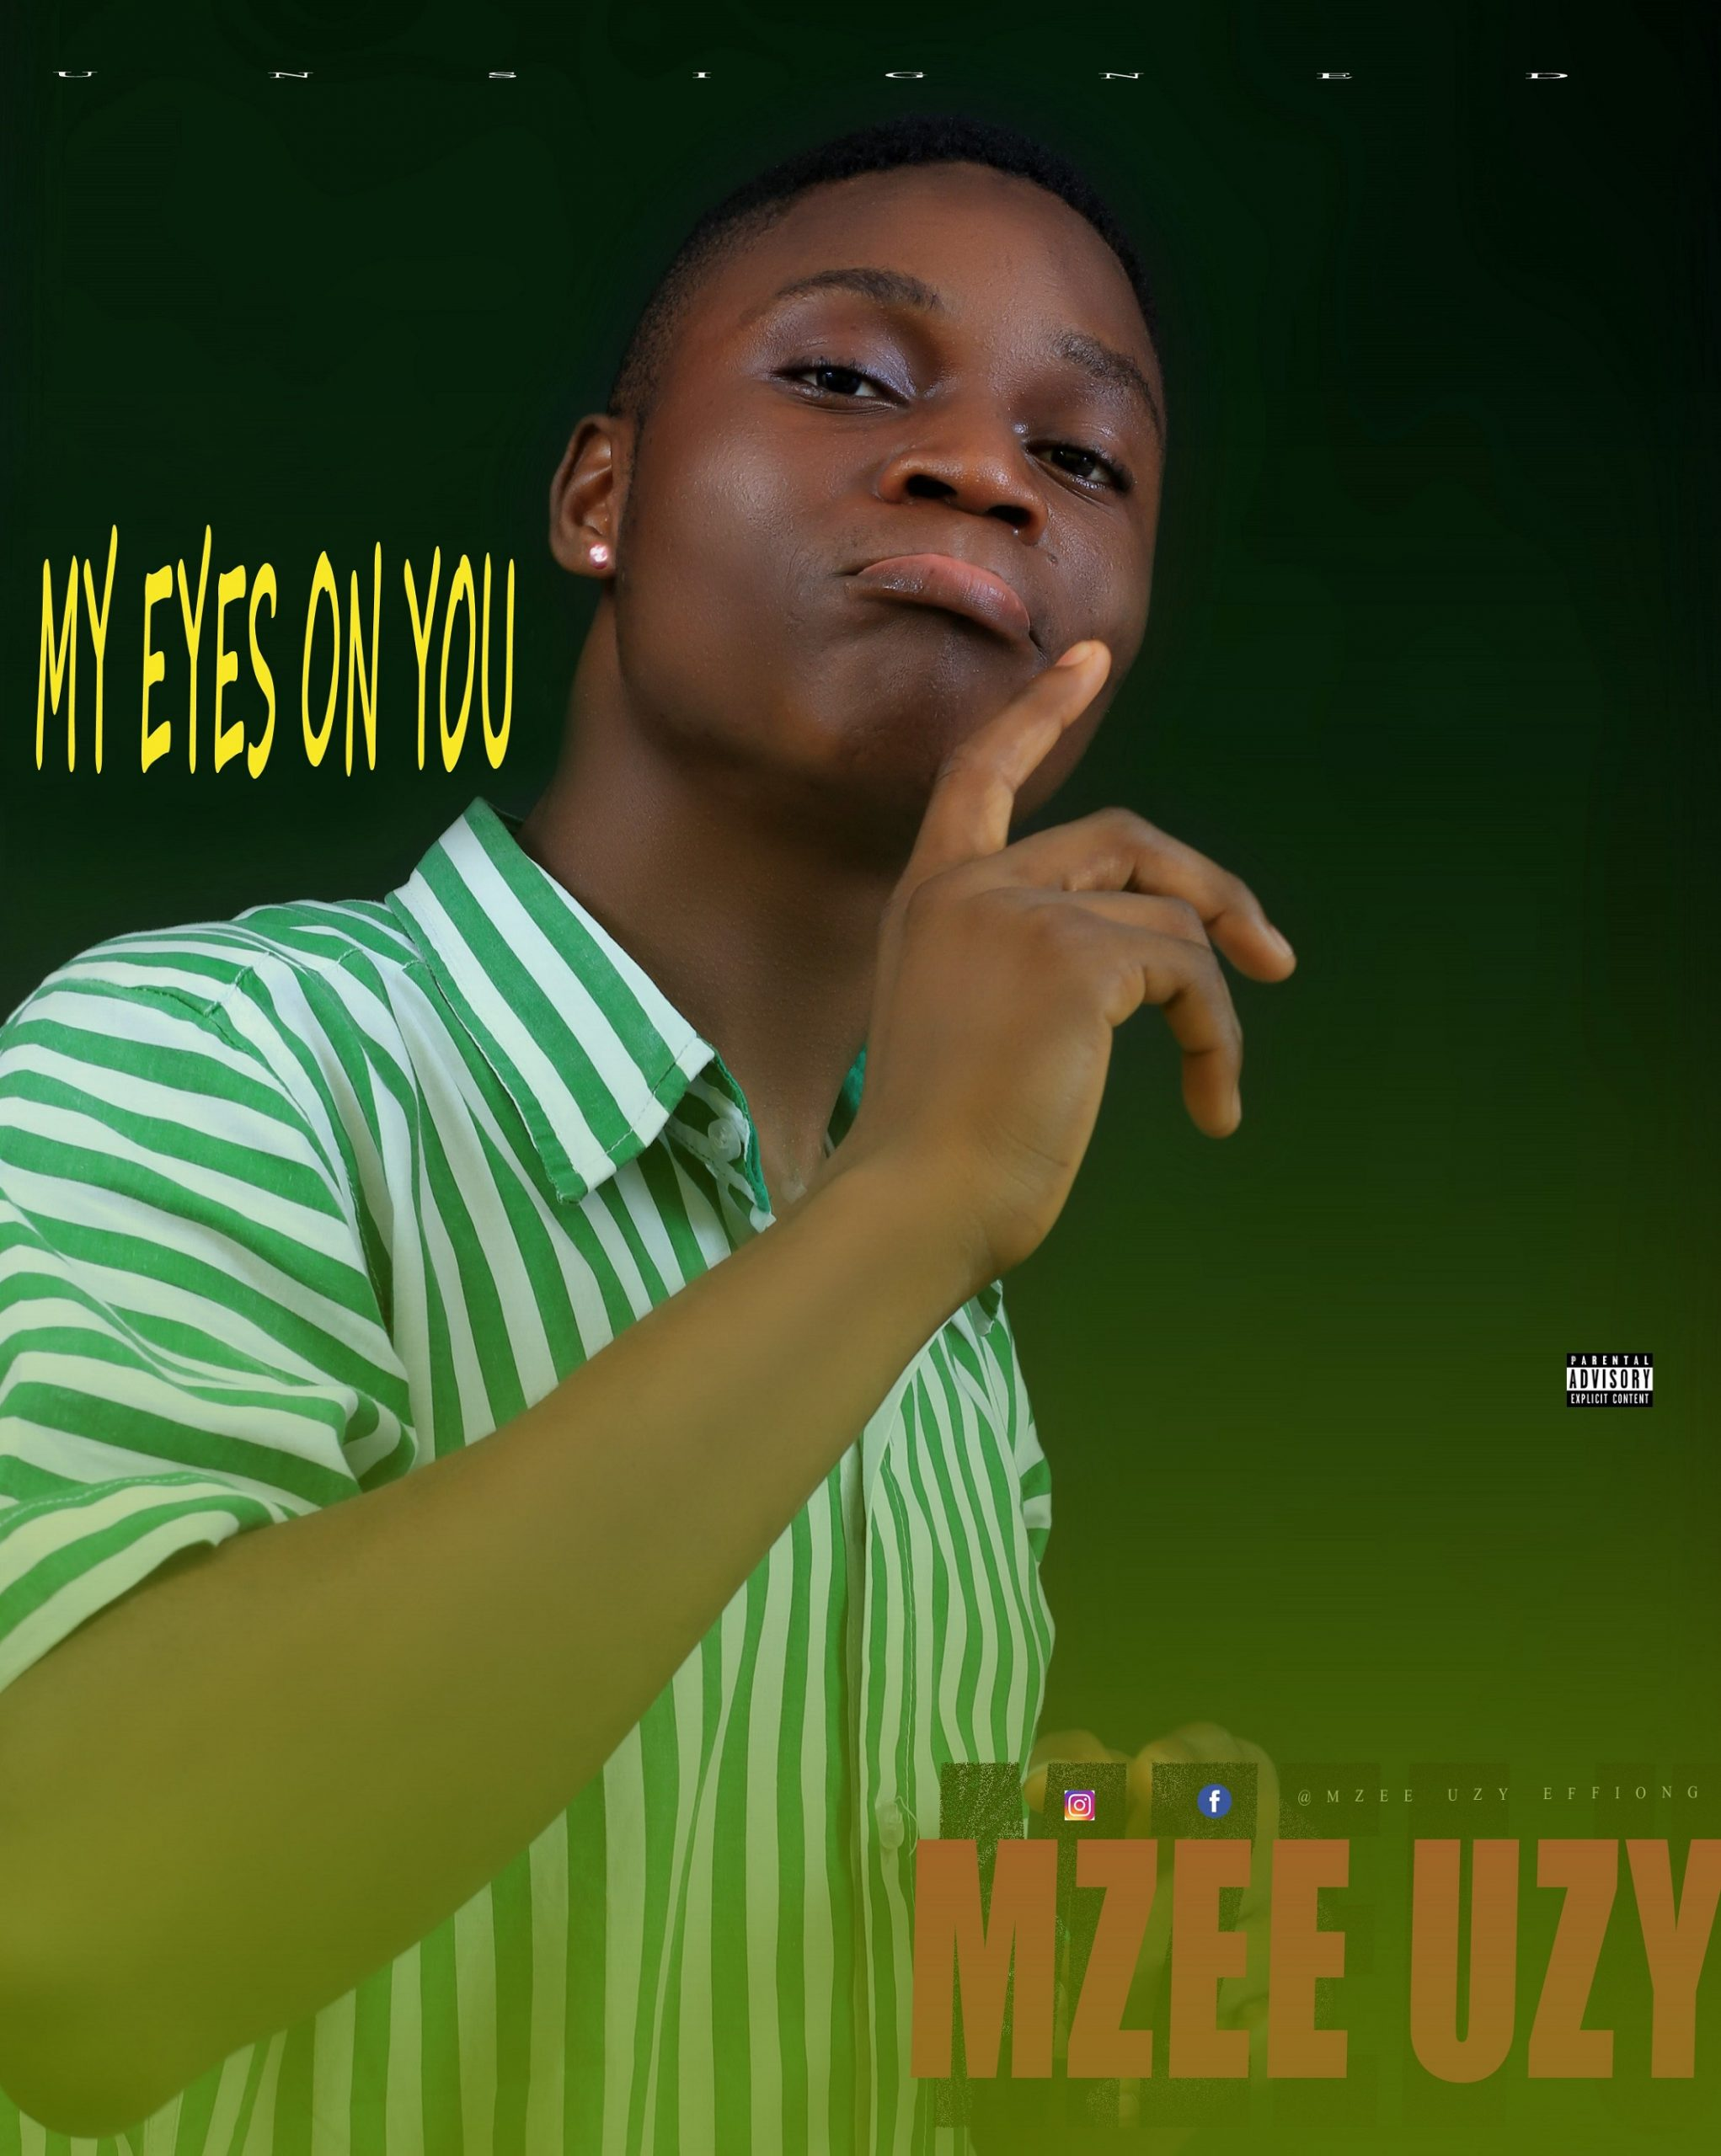 Download My Eyes On You by Mzee Uzy